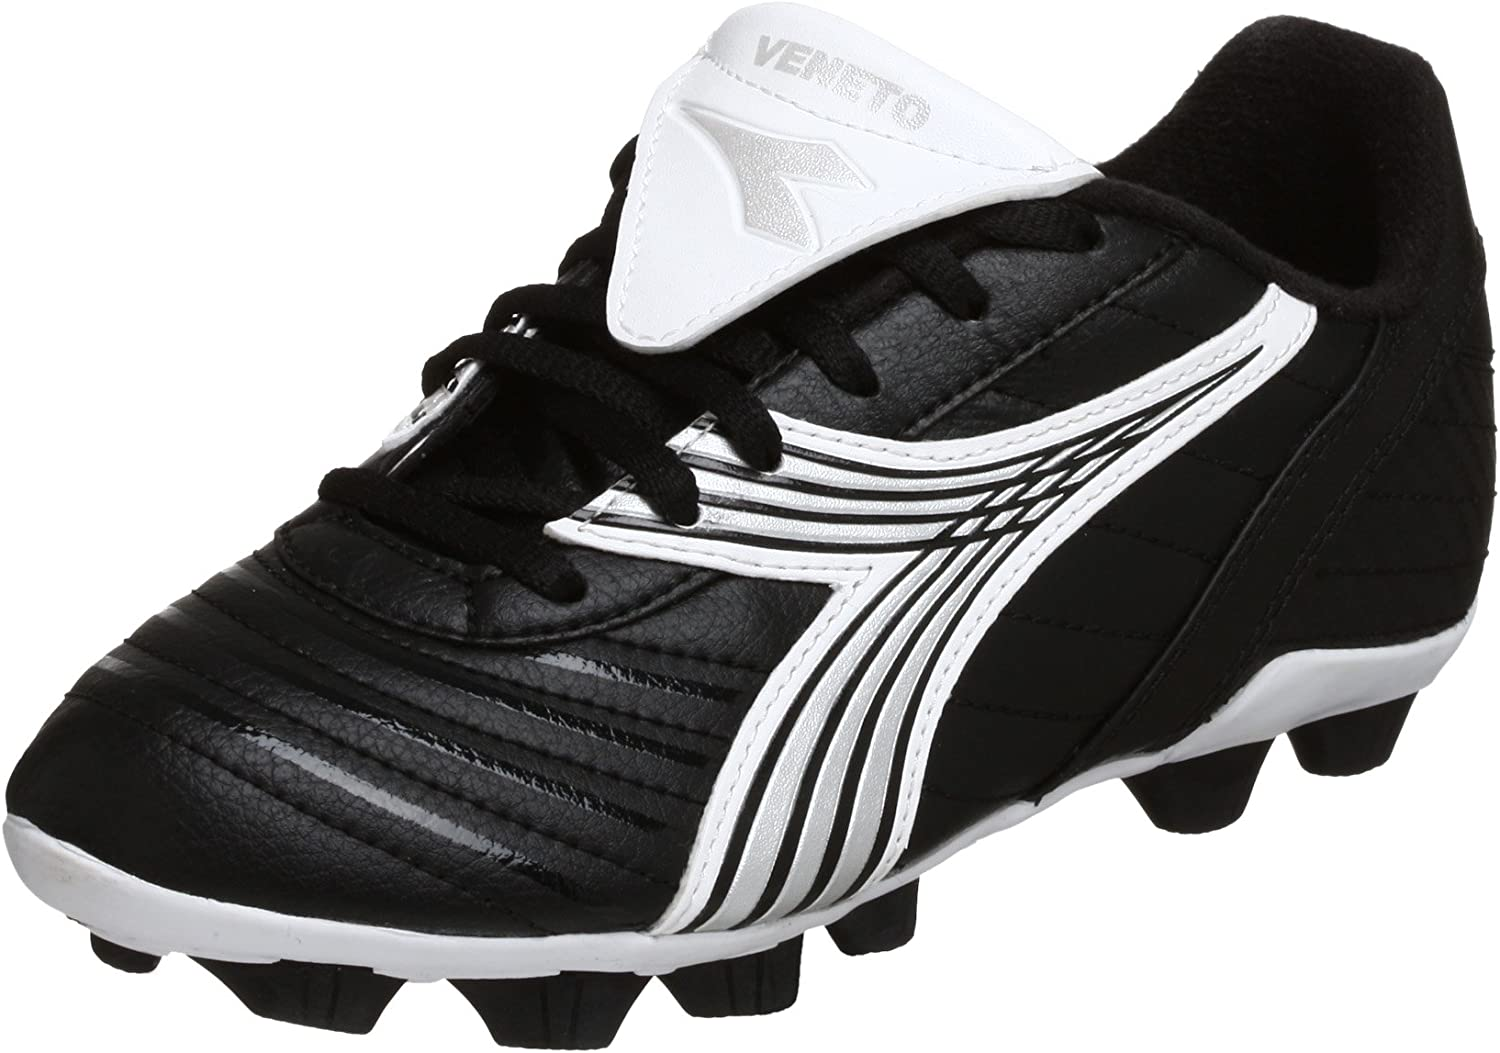 DM Med. Youth Soccer Cleats Diadora Maximus MD Black//White /& various colors